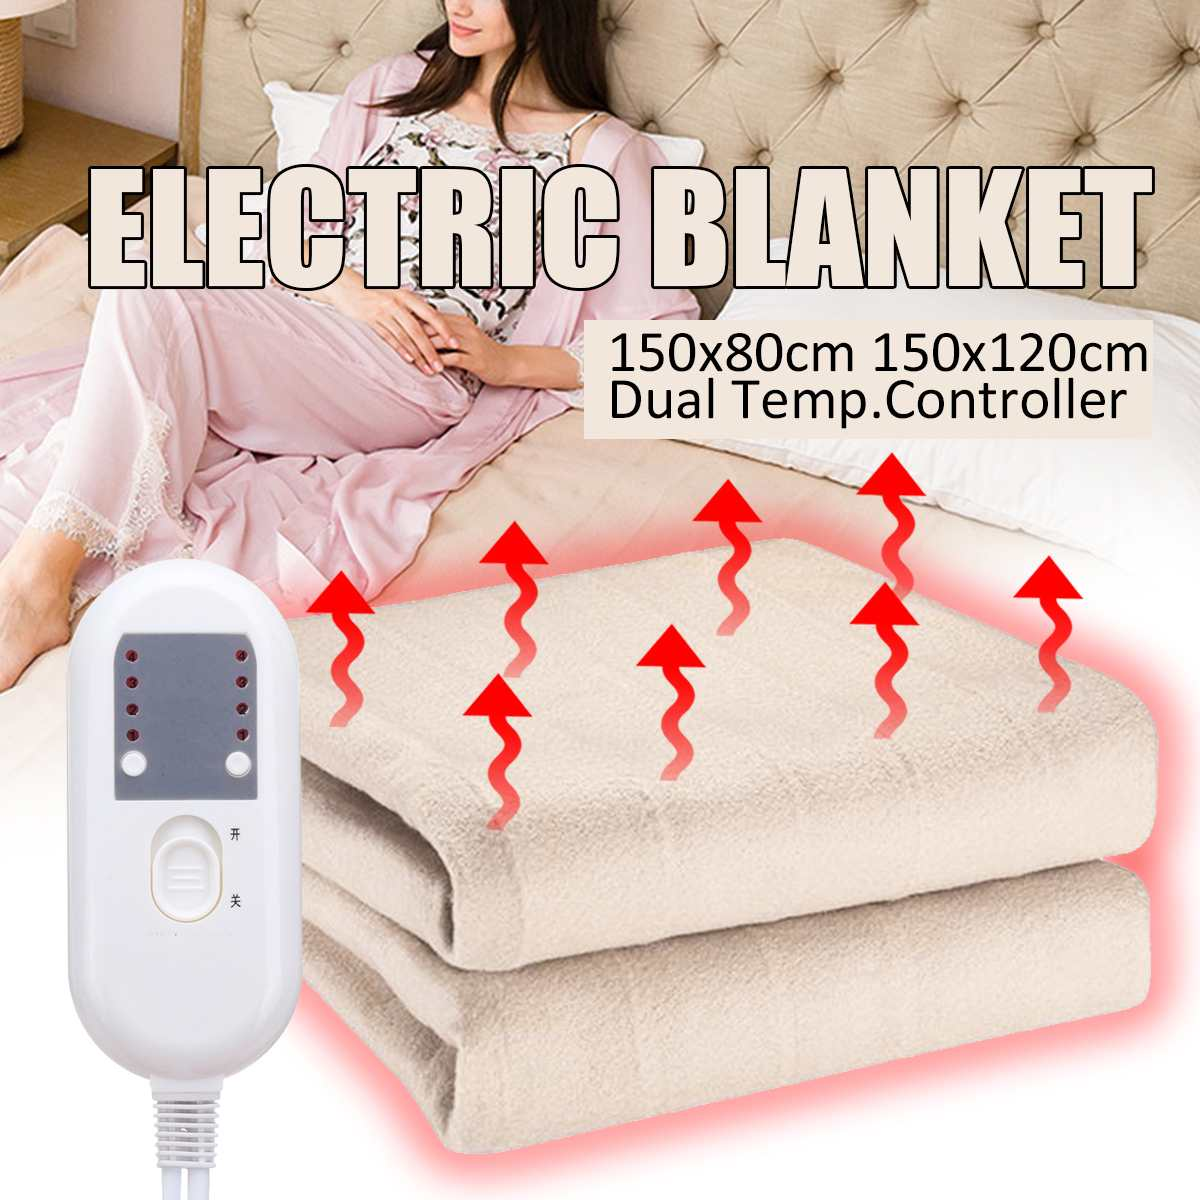 Electric Heated Blanket 3 Gears Temperature Control Warming Comfort Winter Cover